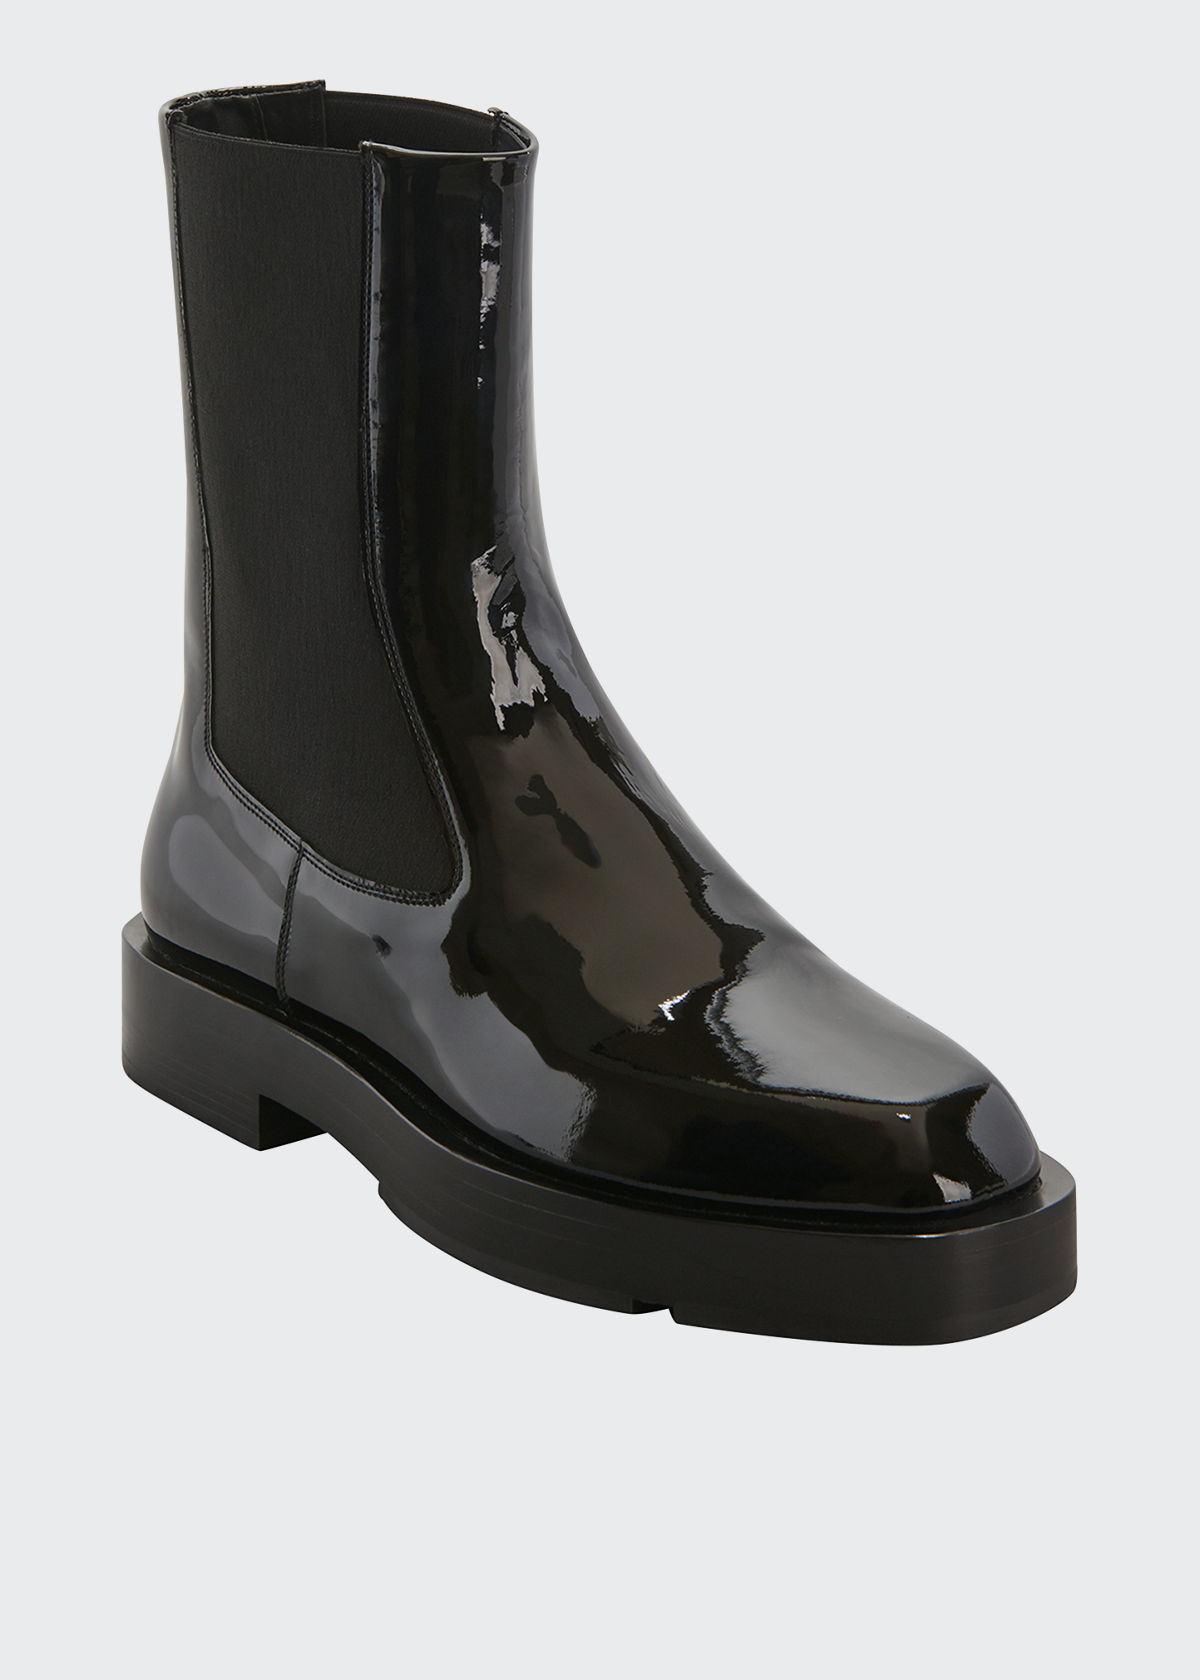 Givenchy MEN'S PATENT LEATHER CHELSEA BOOTS